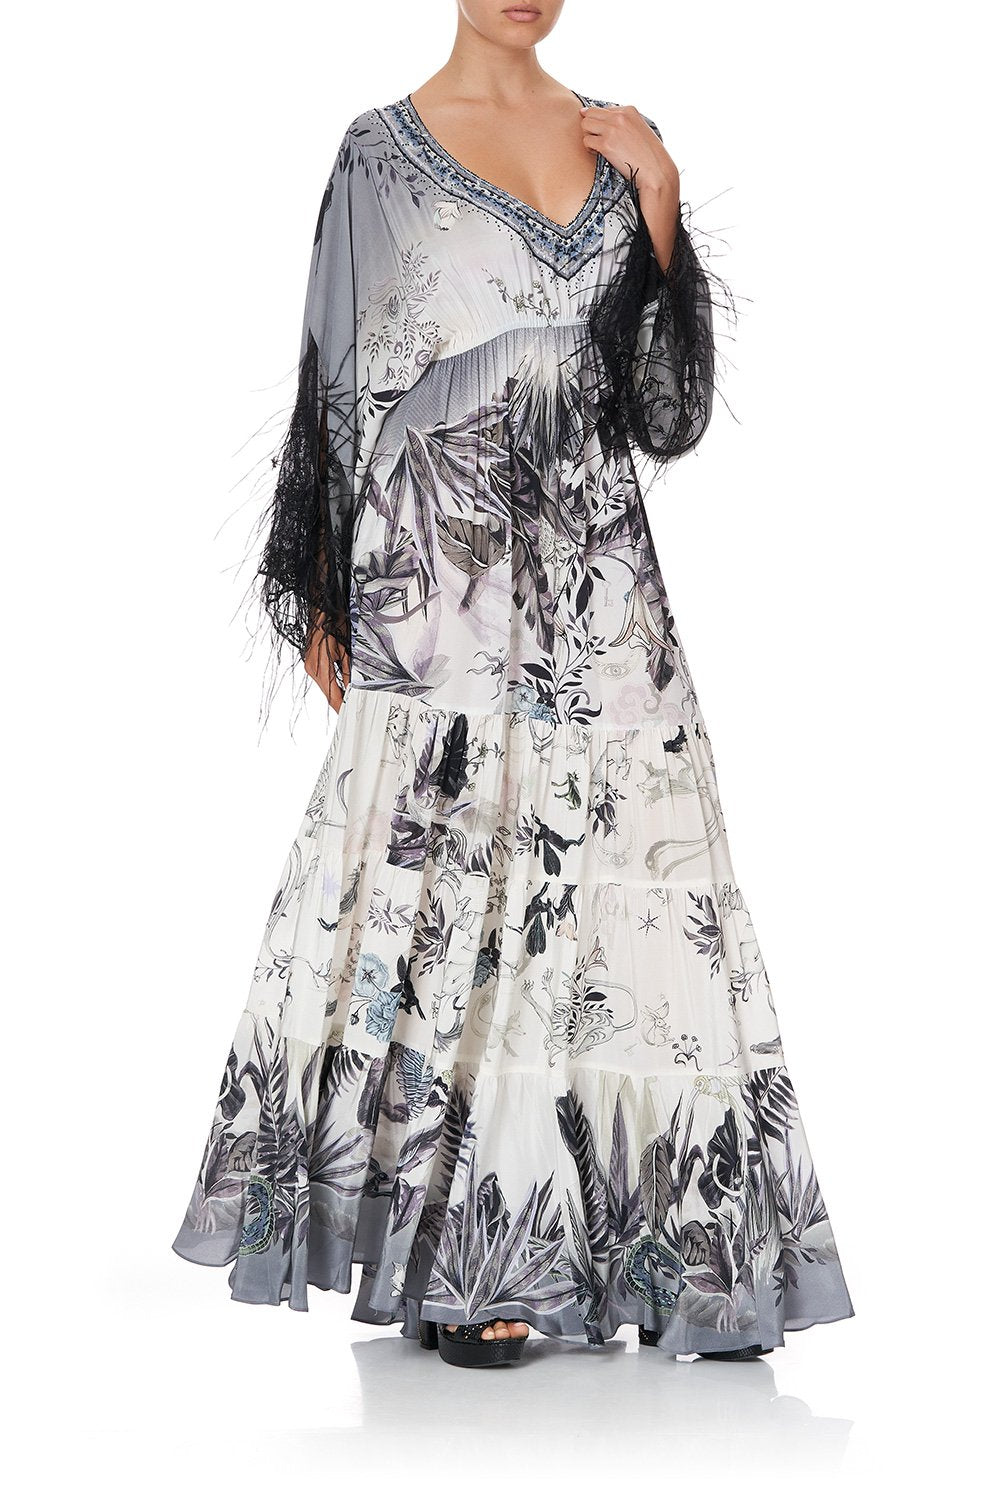 PANEL DRESS WITH LACE SLEEVE MOONLIT MUSINGS